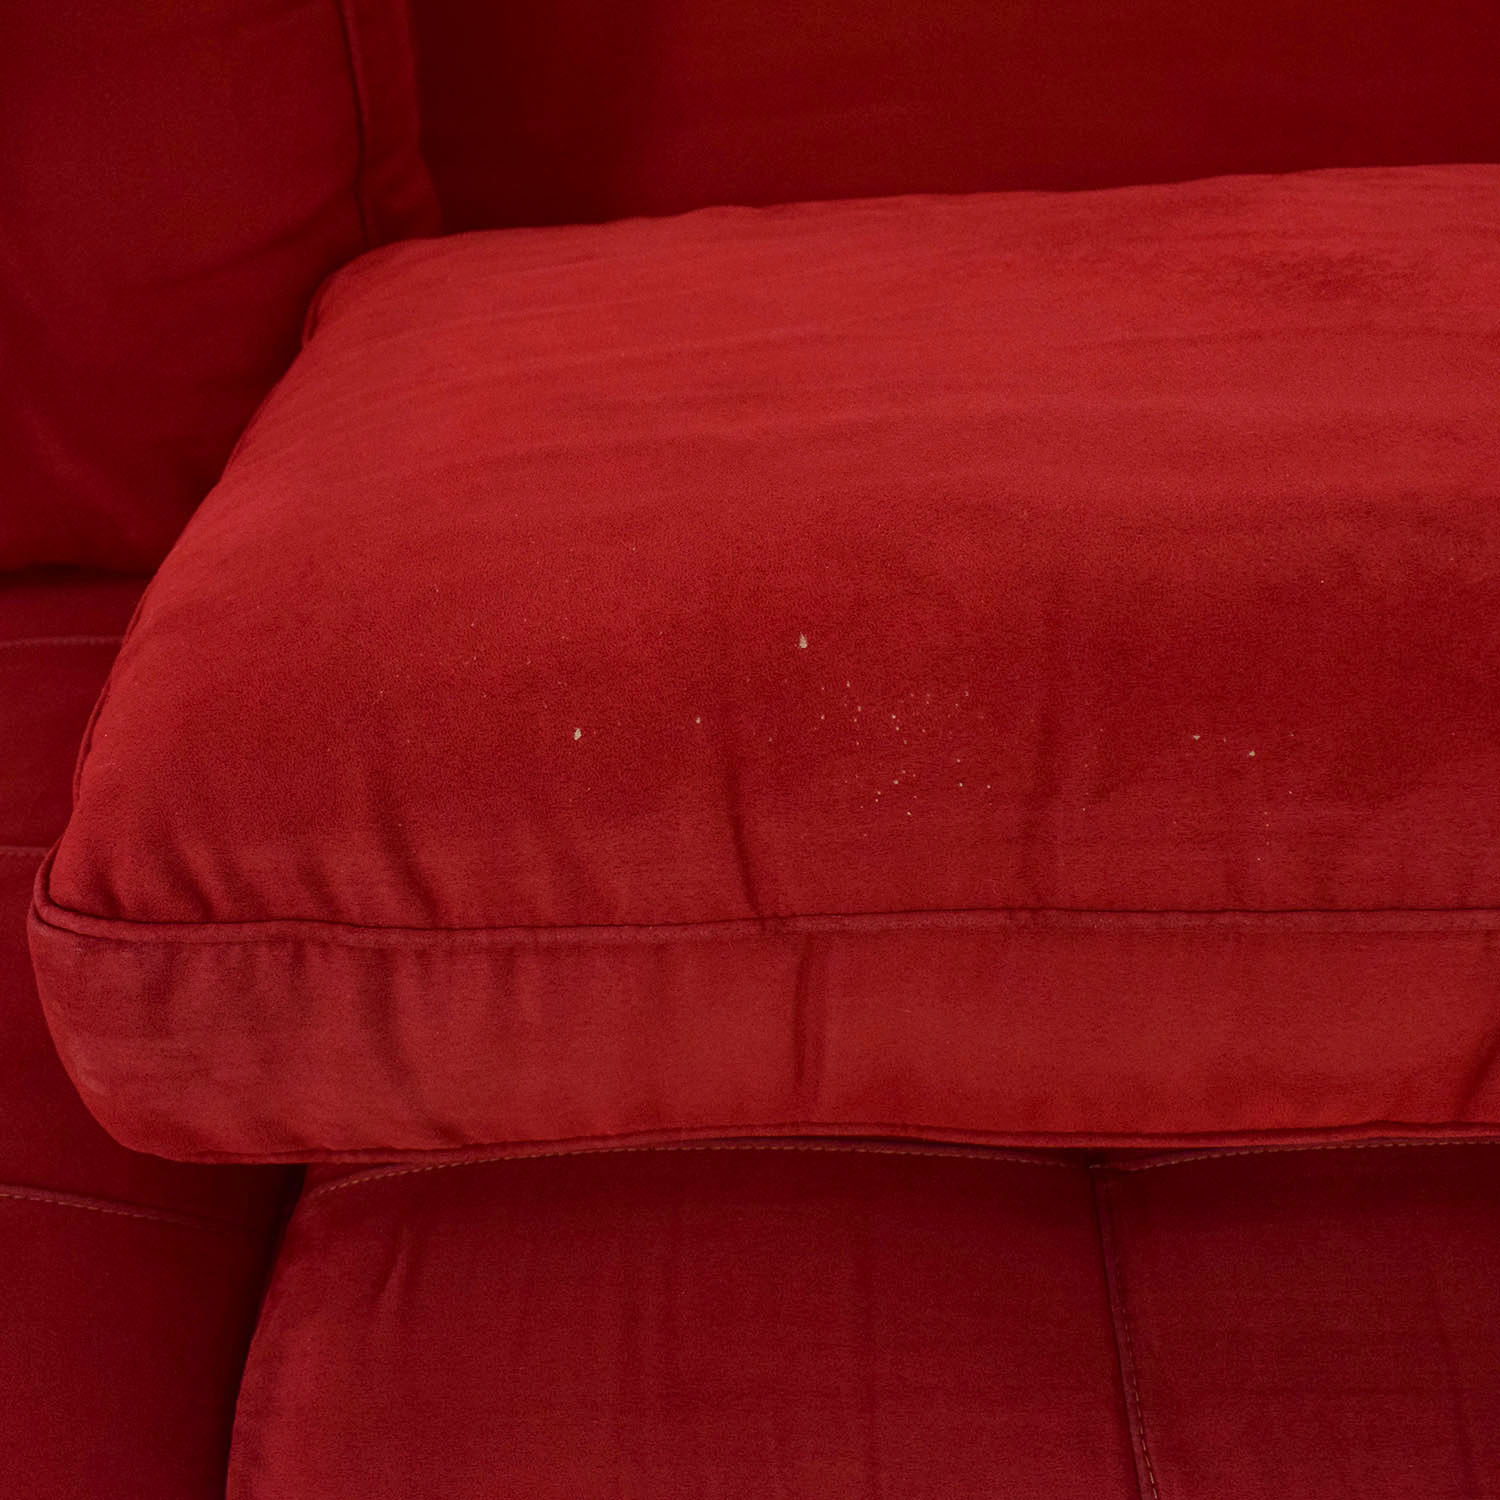 Raymour & Flanigan Raymour & Flanigan Red Sleeper Sofa discount